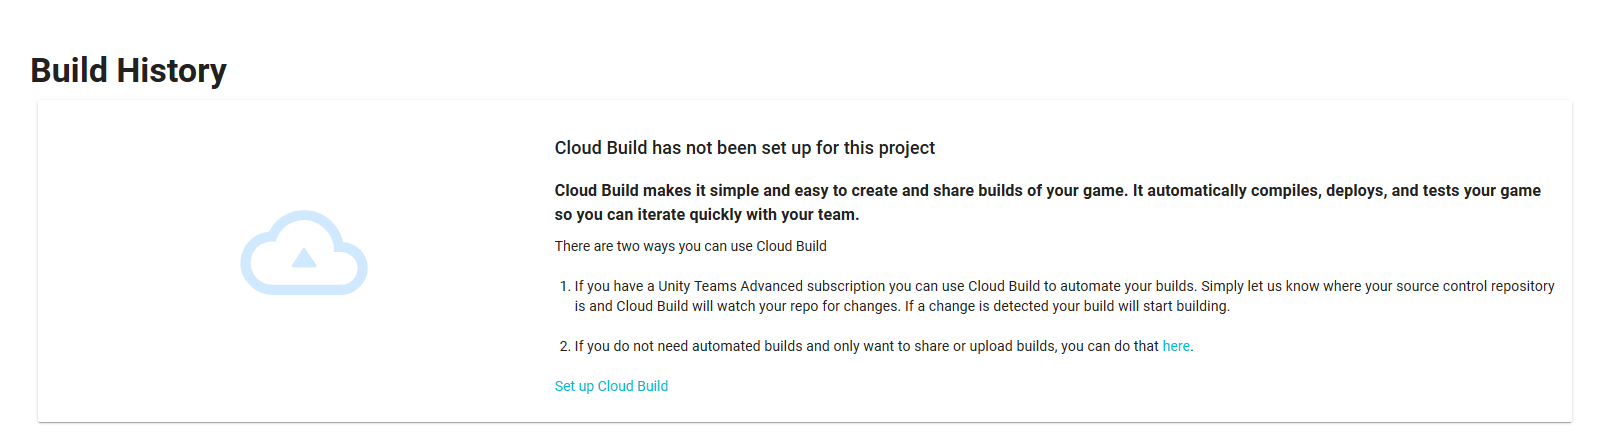 Unity Cloud Build Tutorial and Review